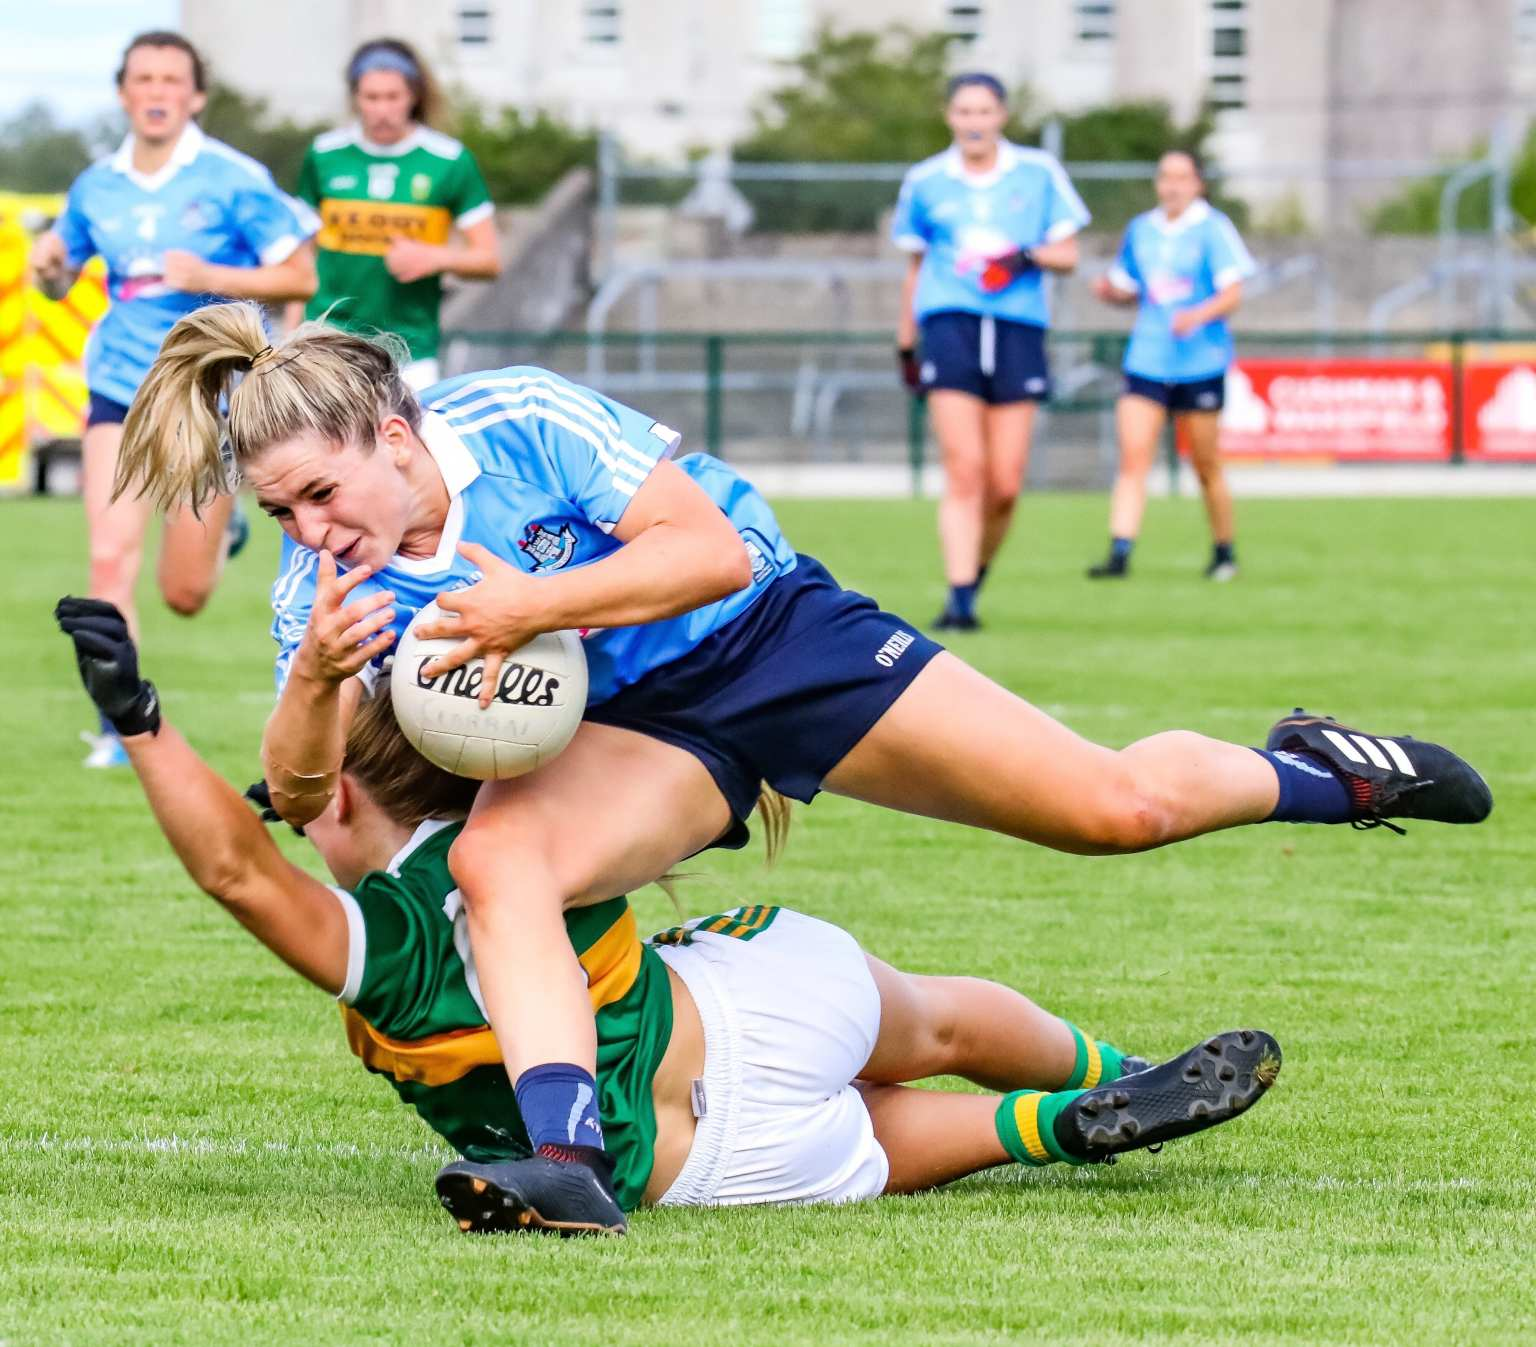 A Dublin and Kerry Ladies footballer battle for the ball during a game, both sides meet again this weekend in the TG4 All Ireland Championship quarter finals.